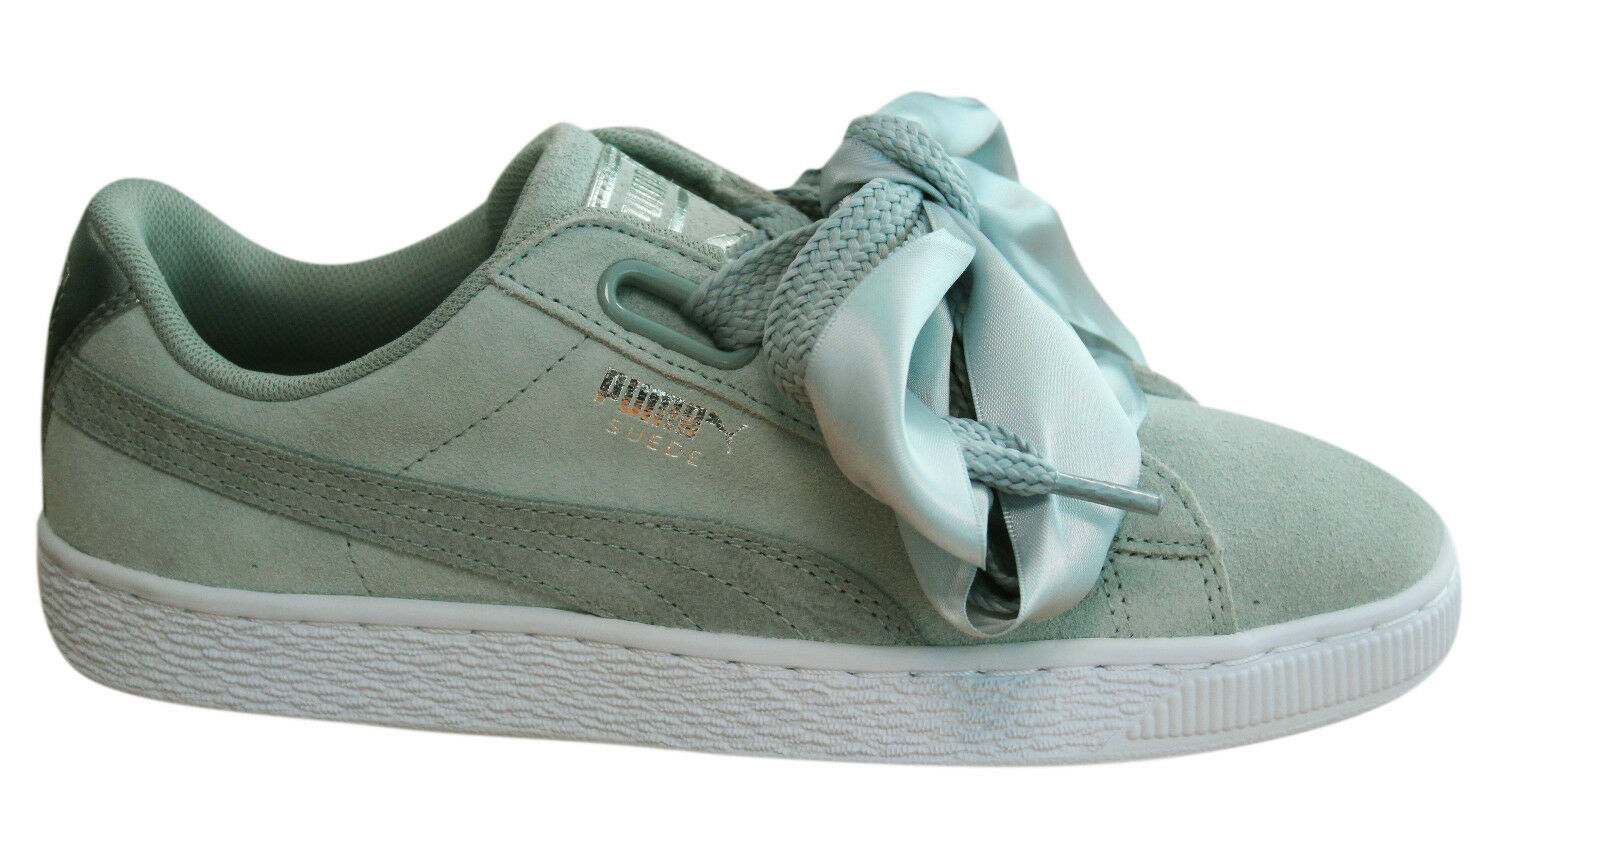 los angeles e3aa4 8f138 Details about Puma Suede Heart Safari Womens Trainers Lace Up Grey Leather  364083 02 U29